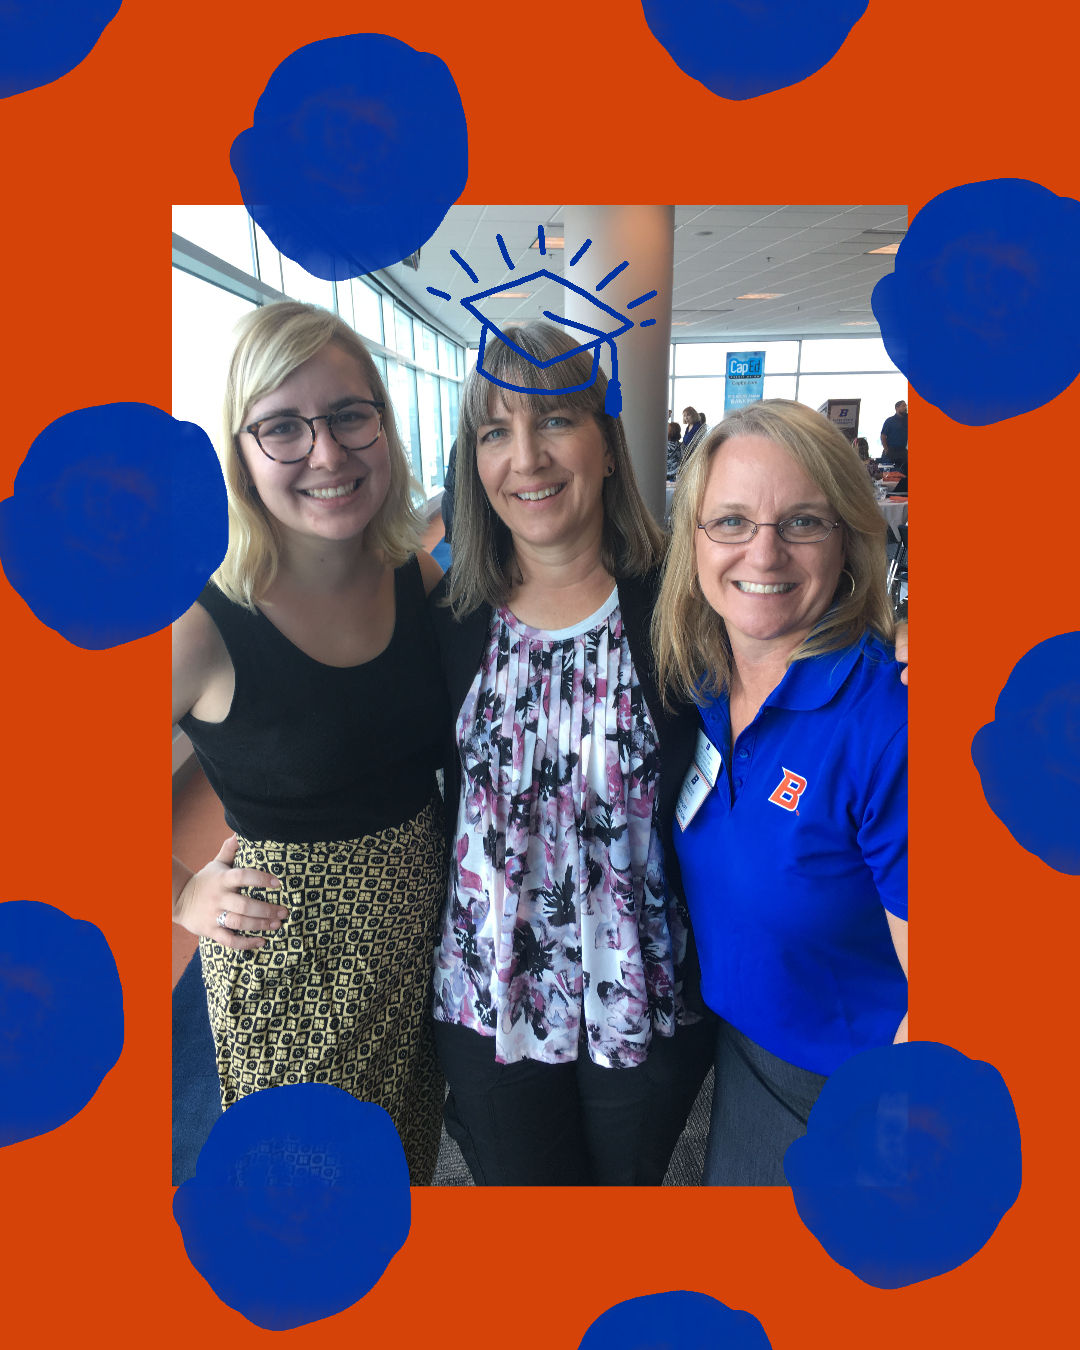 Kati Searles poses with her academic advisor and her daughter.